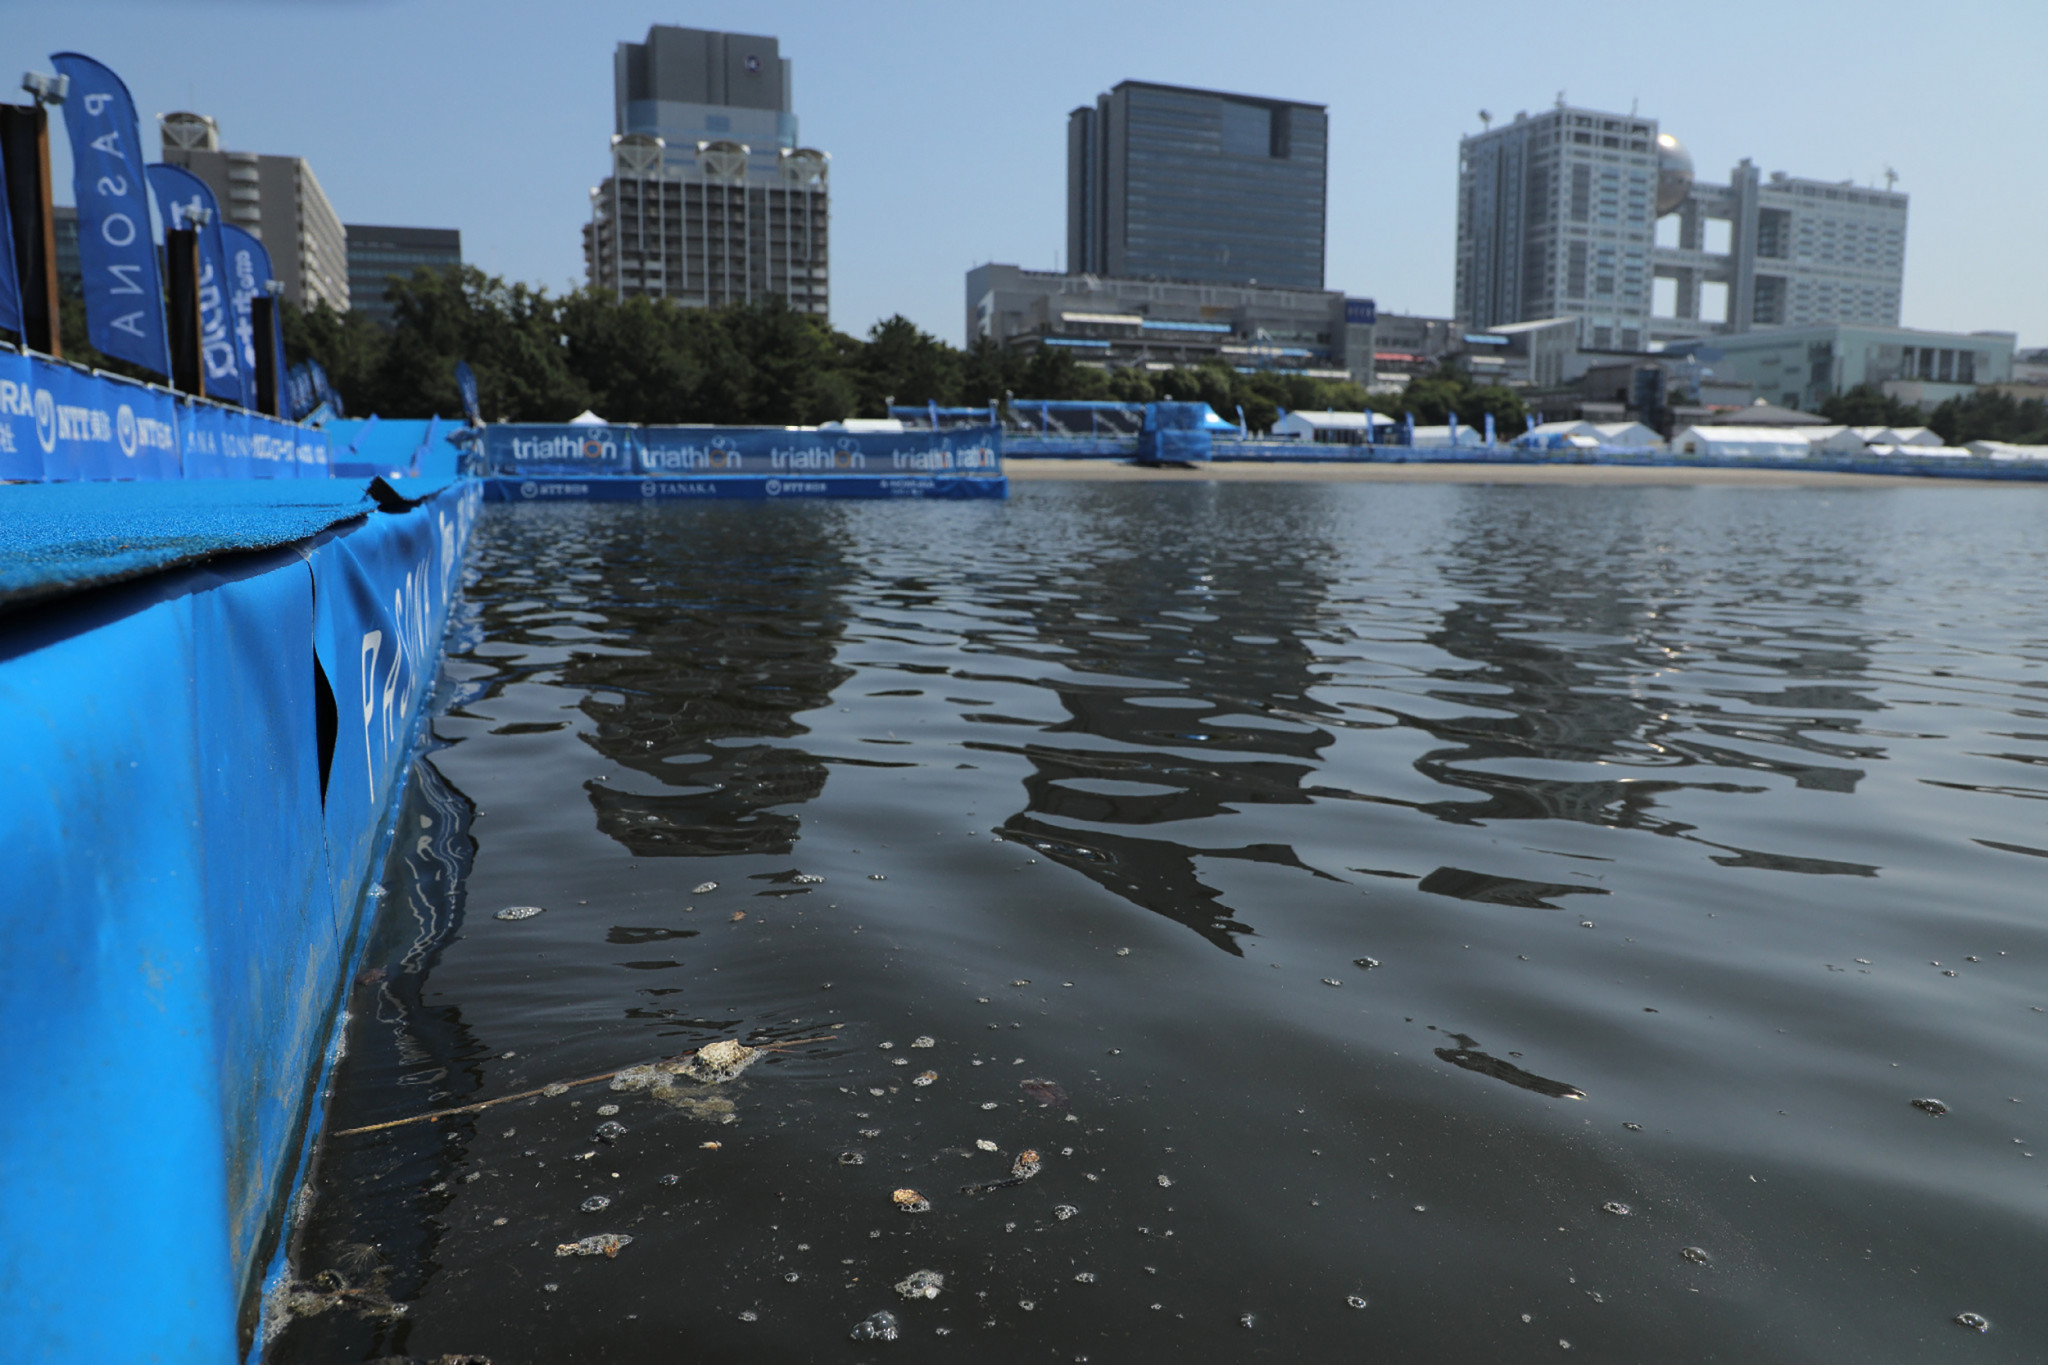 Tokyo 2020 to increase water quality efforts to ensure athlete safety at Olympic Games